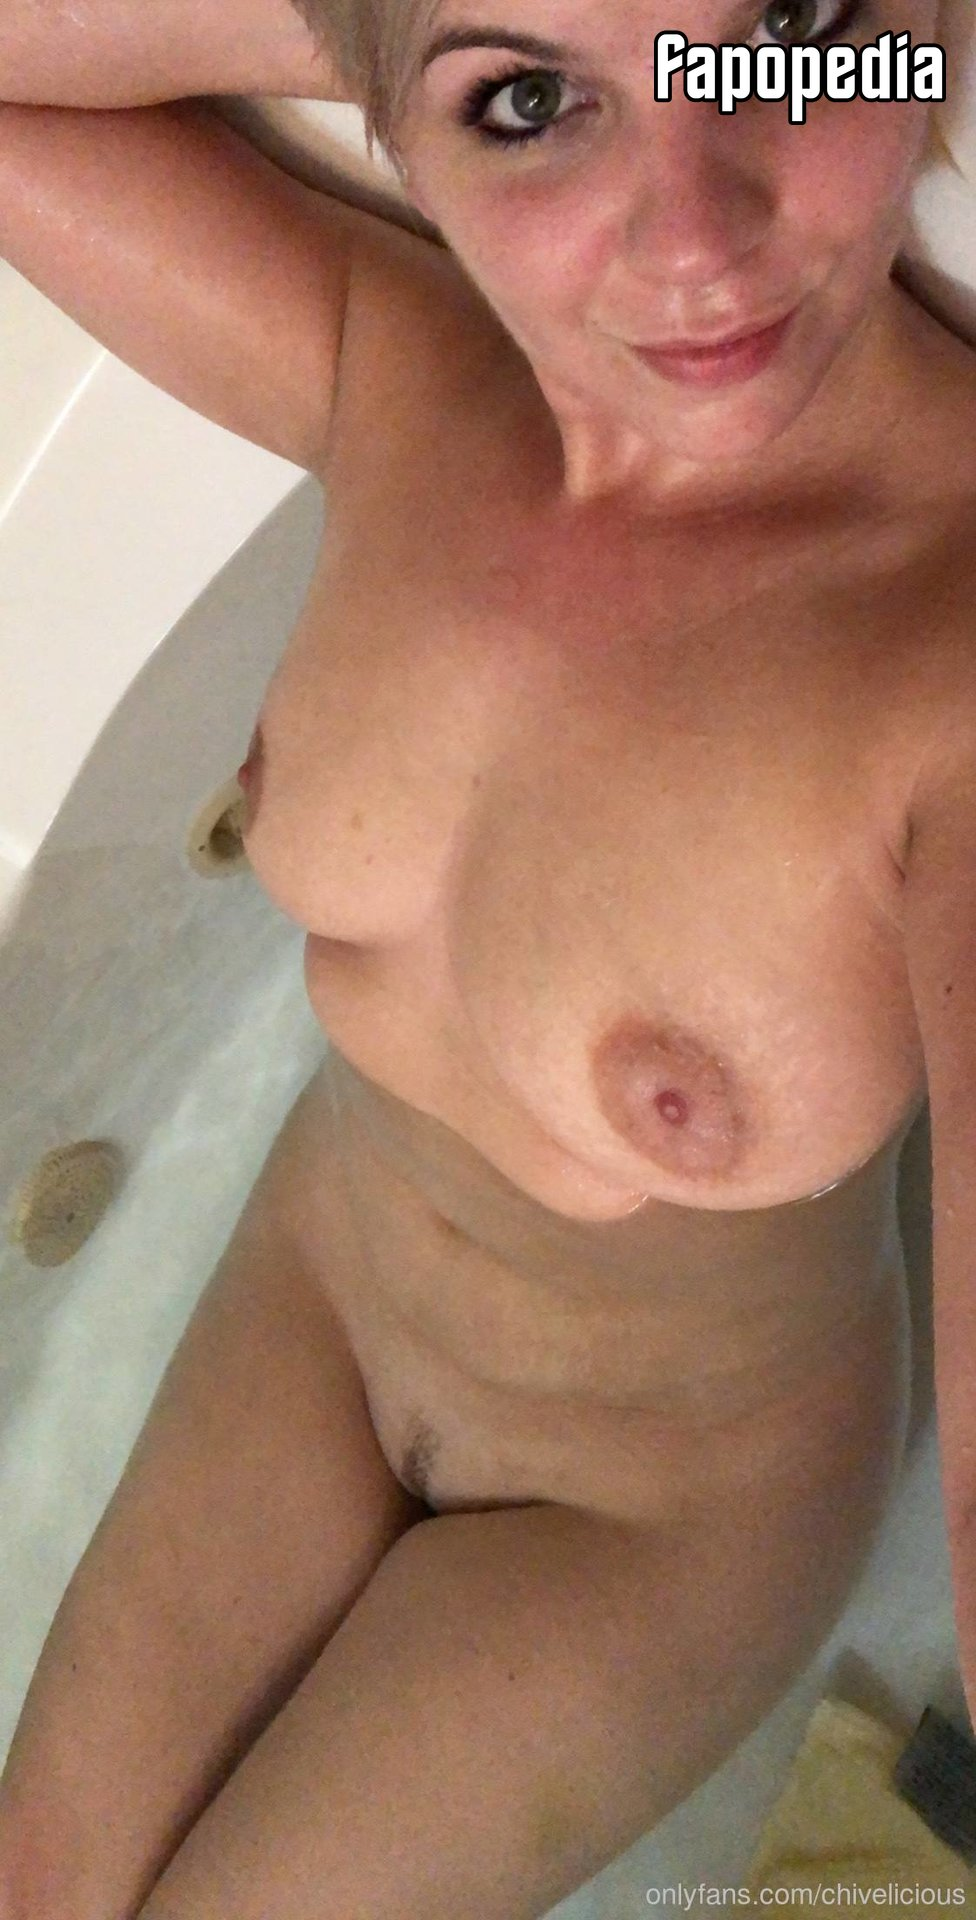 ThatSoccerMom Chivelicious  Nude OnlyFans Leaks